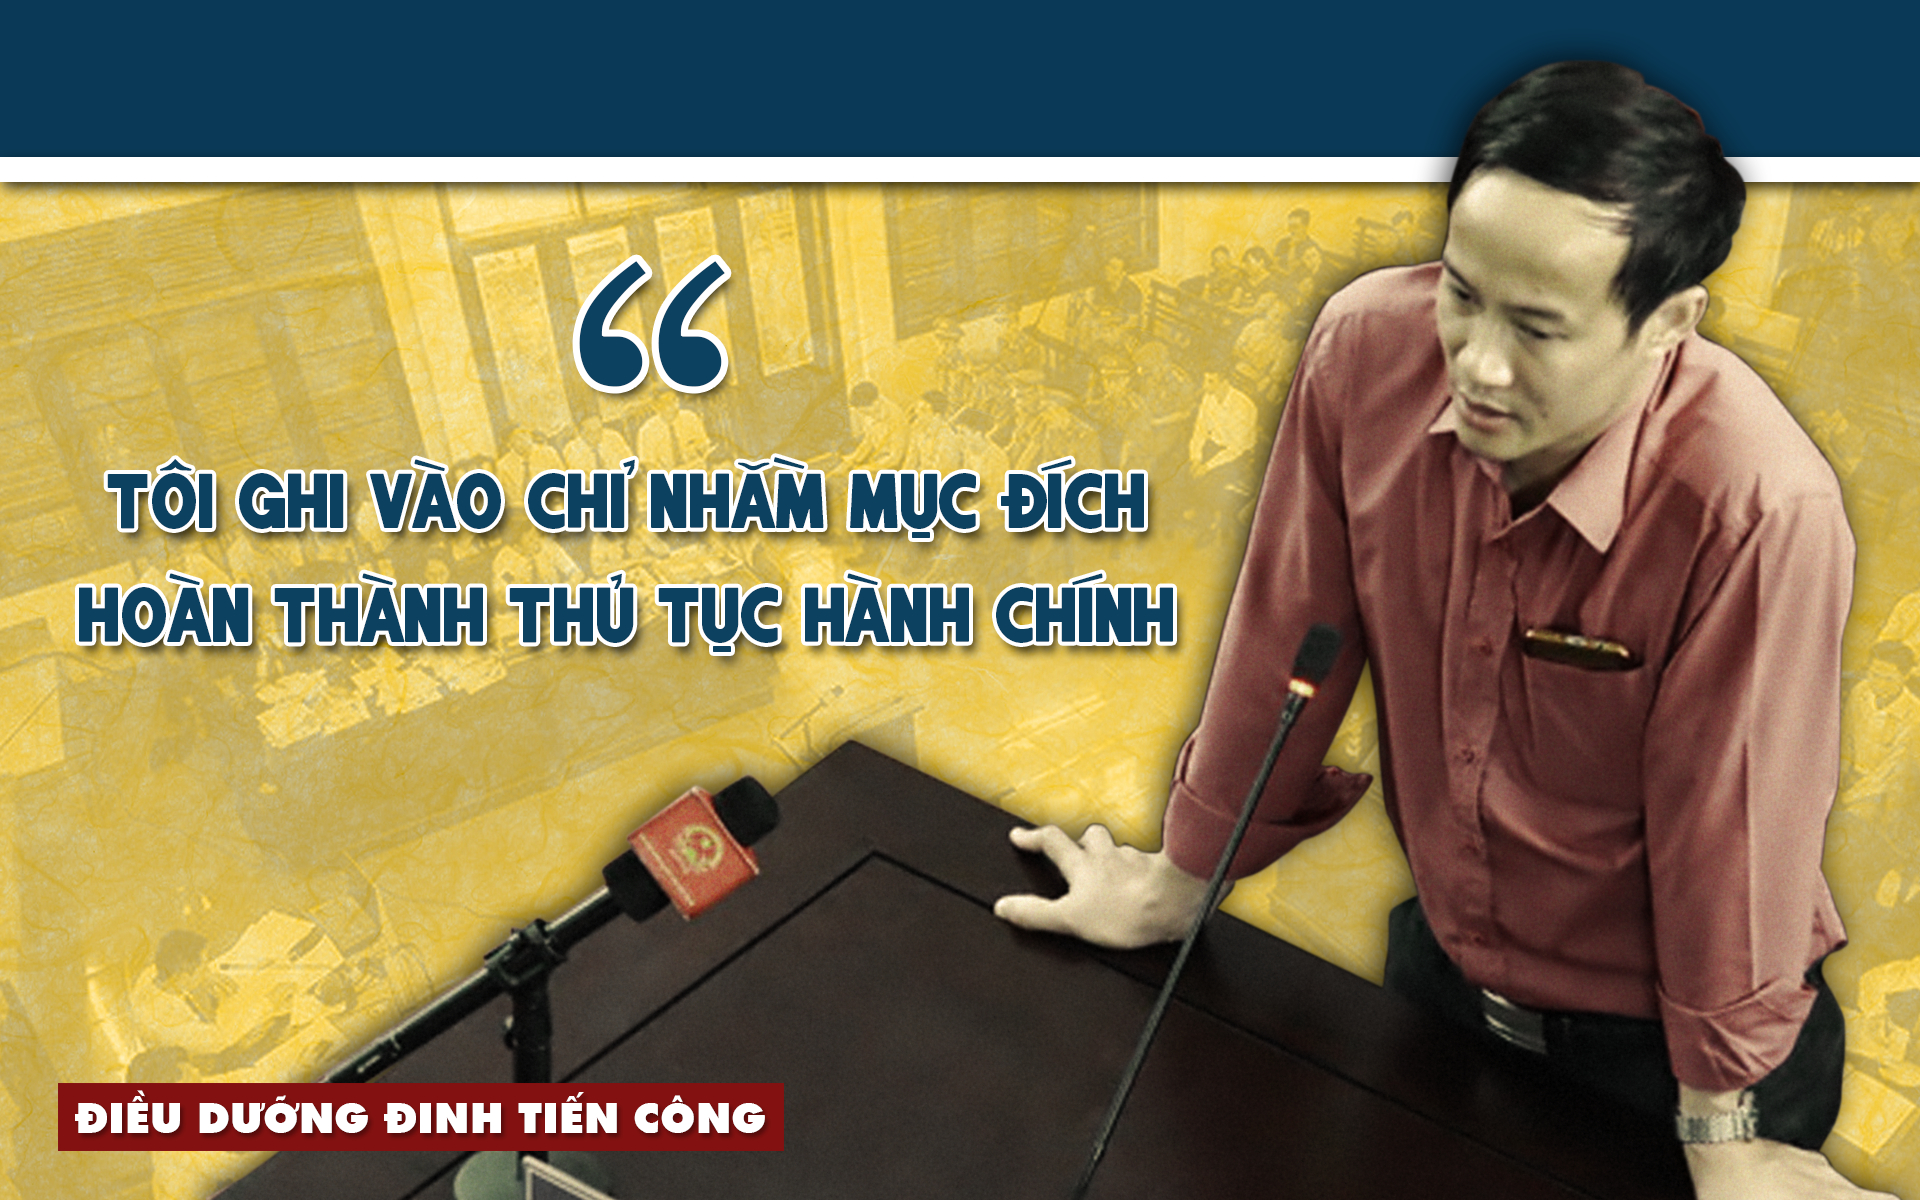 Dinh-Tien-Cong